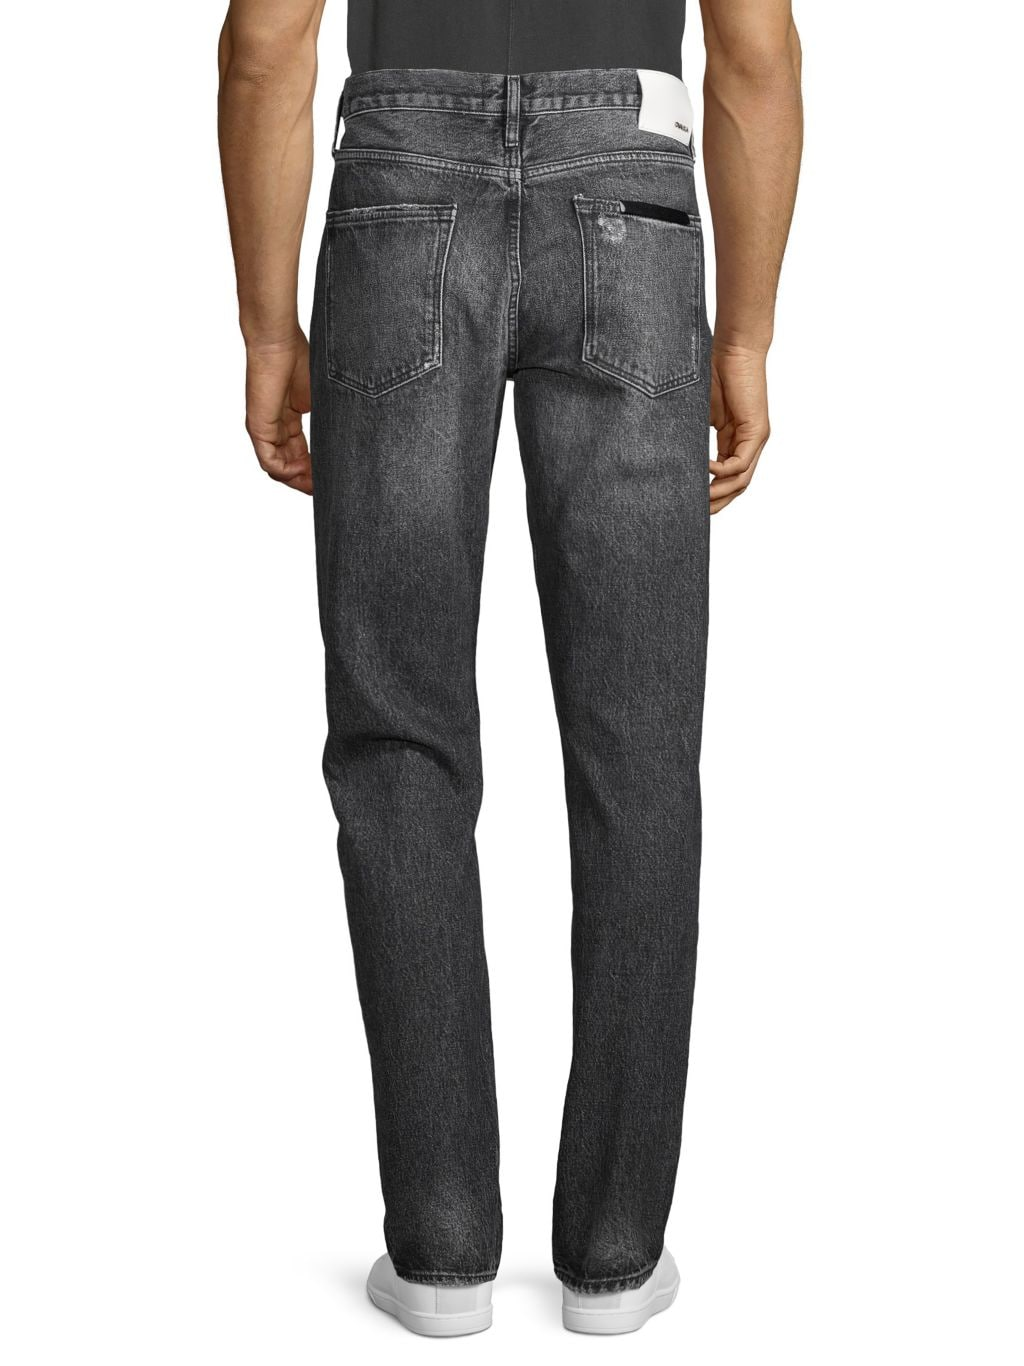 Ovadia & Sons Distressed Straight Tapered Jeans